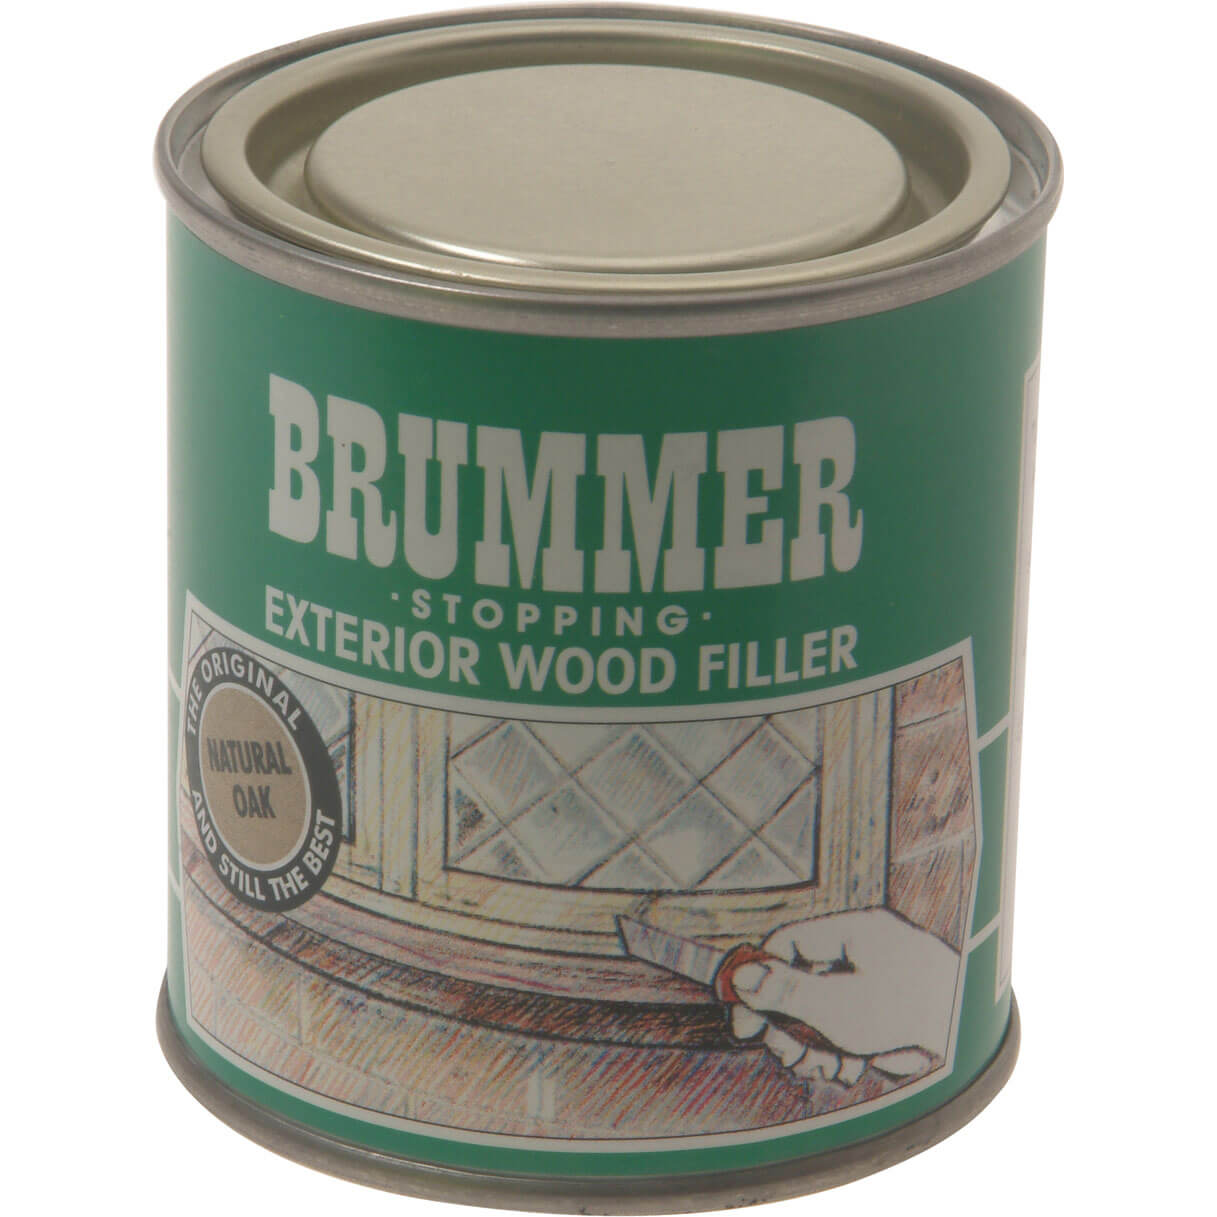 Image of Brummer Green Label Exterior Stopping Wood Filler Medium Oak 625g